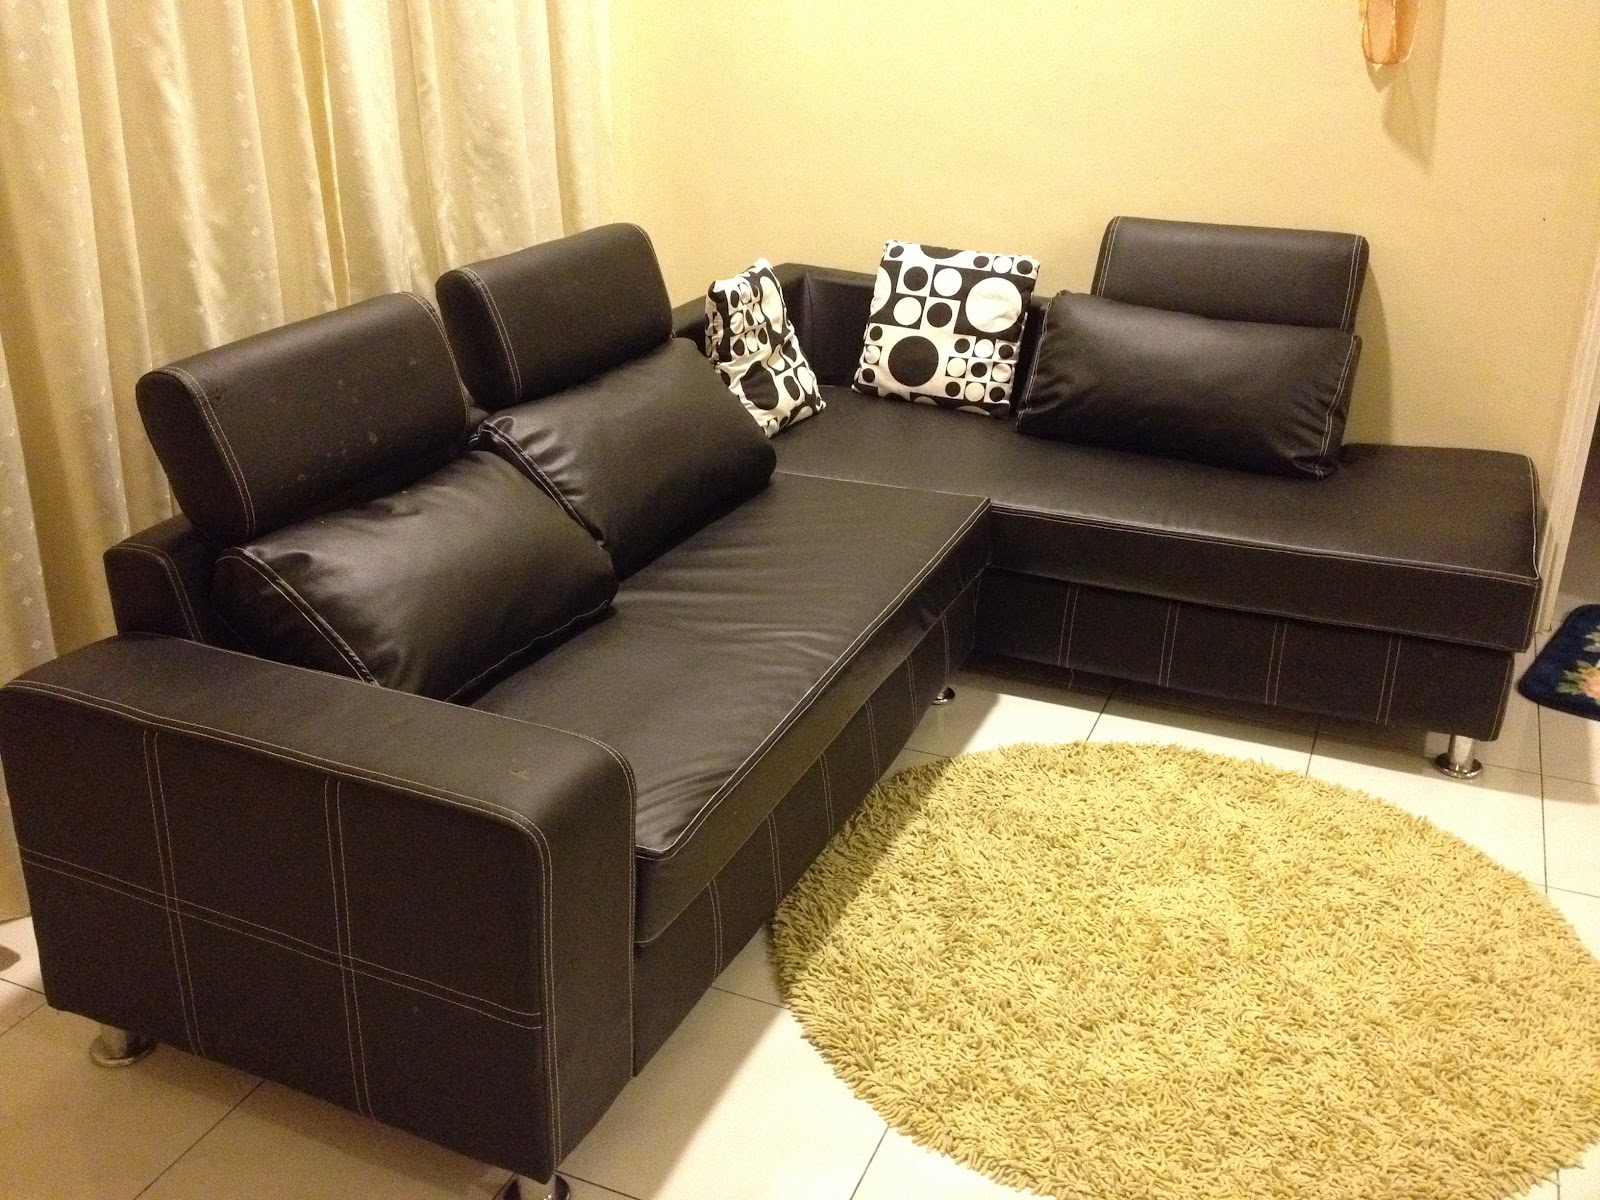 used l shape leather sofa for sale sold out april 2012